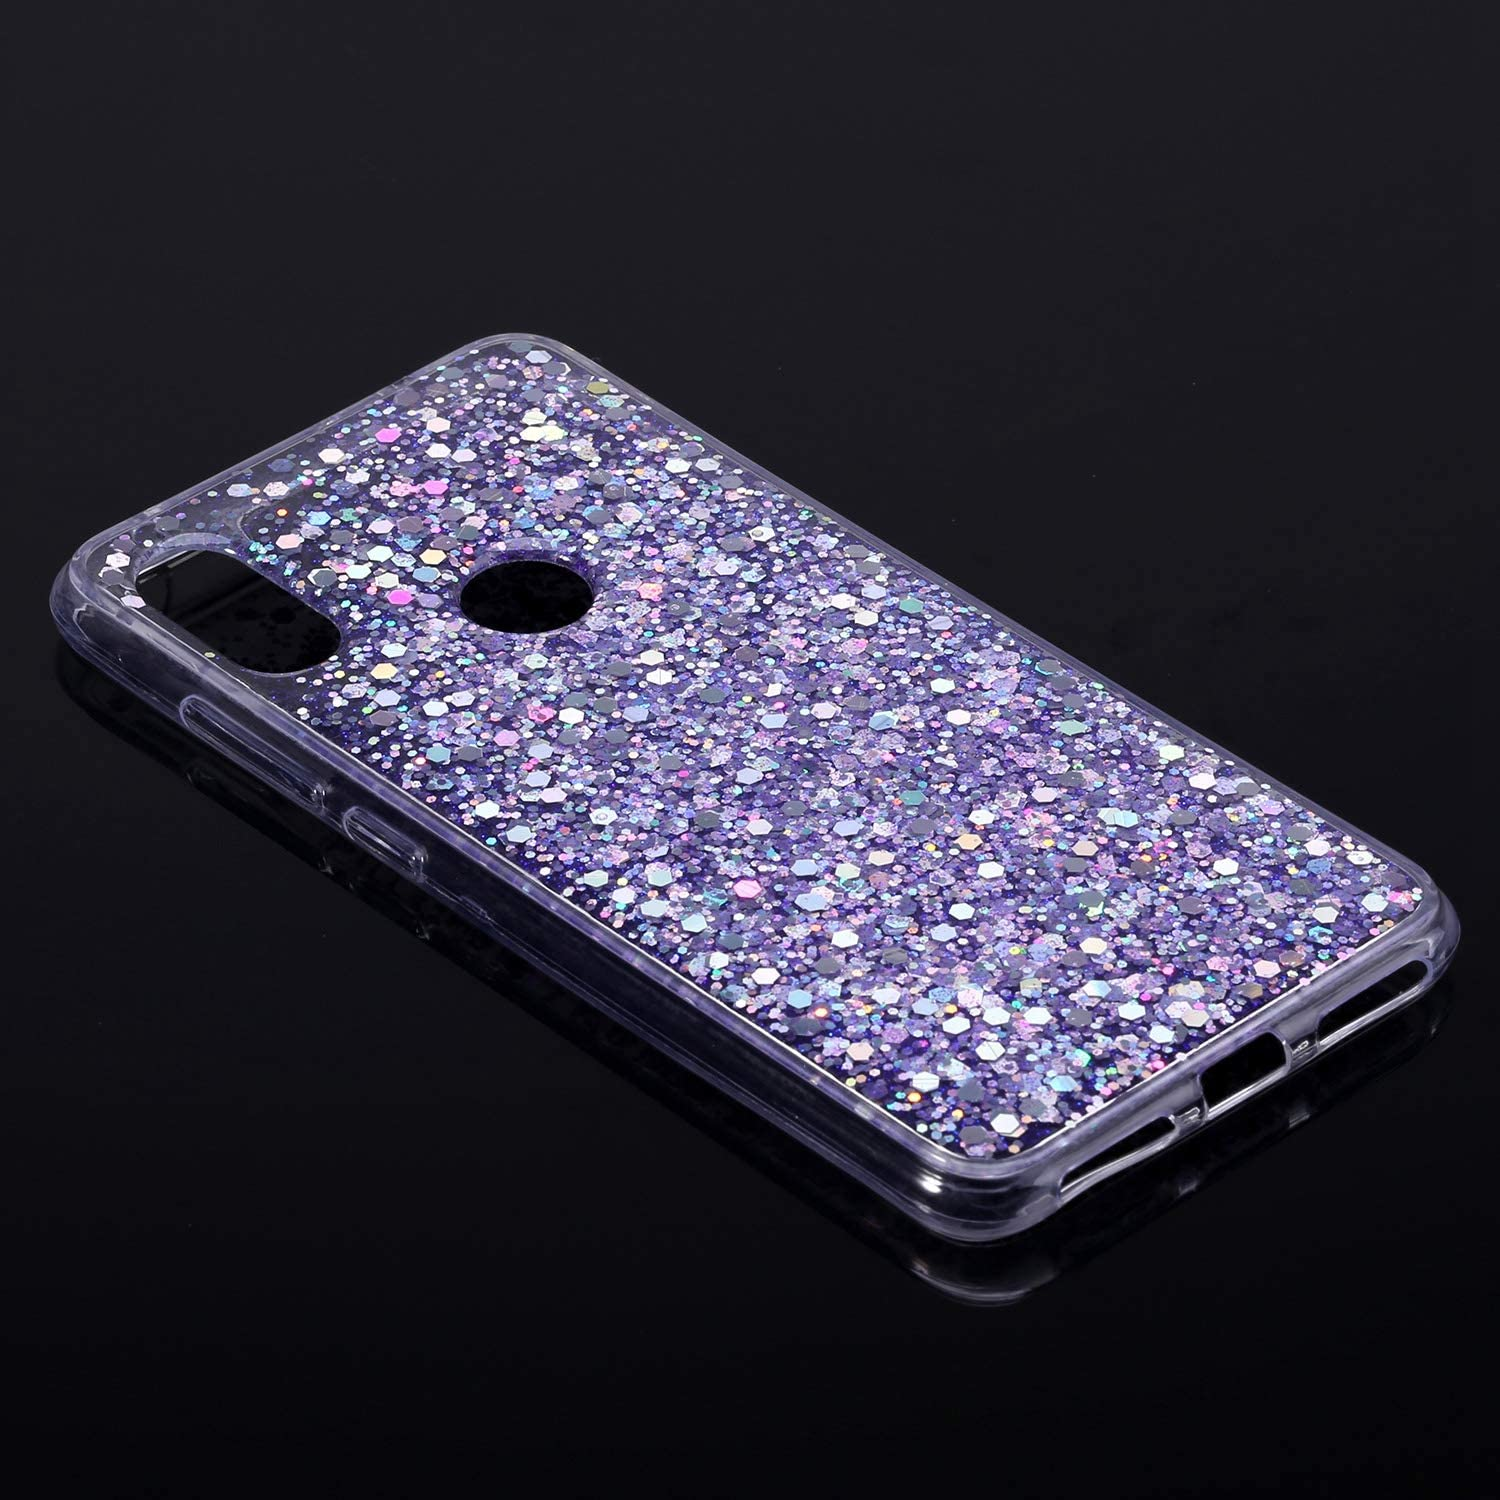 Herbests Compatible with Xiaomi Redmi Note 6 Pro Case Women Girl Glitter Bling Crystal Sparkle Shiny 3D Diamond Paillette Soft Silicone Gel Rubber Shockproof Protective Case Cover,Pink